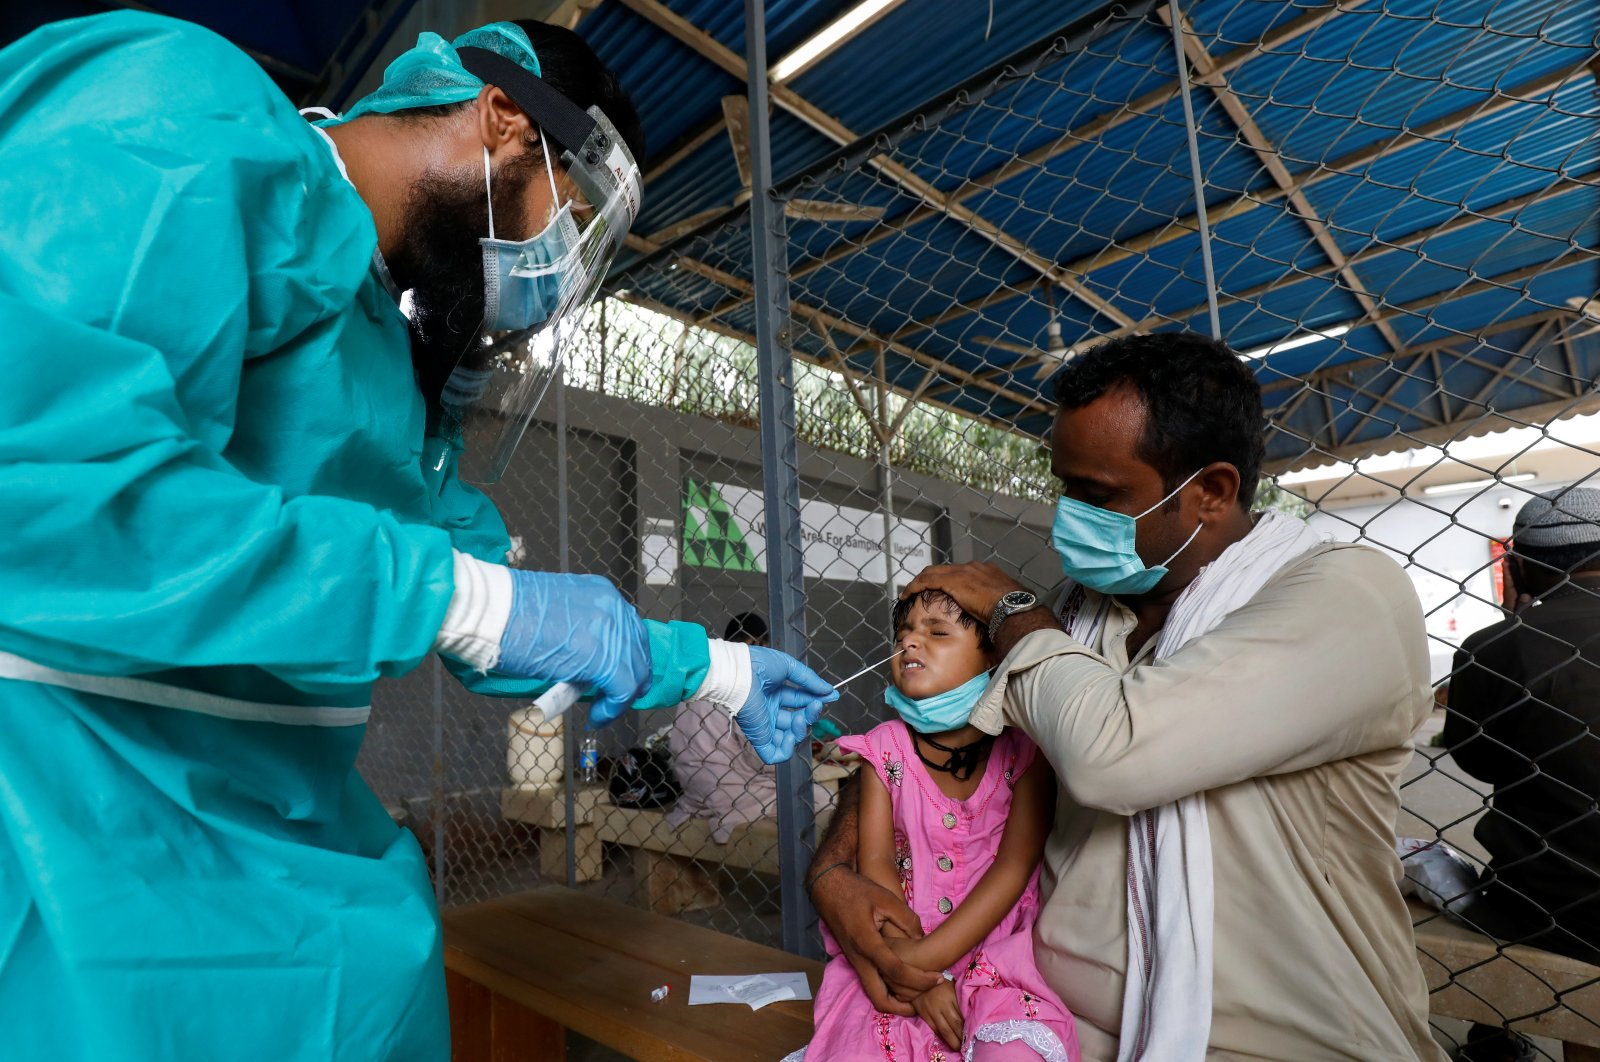 A paramedic wearing protective gear takes a nasal swab from a child, to be tested for the coronavirus, in Karachi, Pakistan, July 13, 2020. (Reuters Photo)